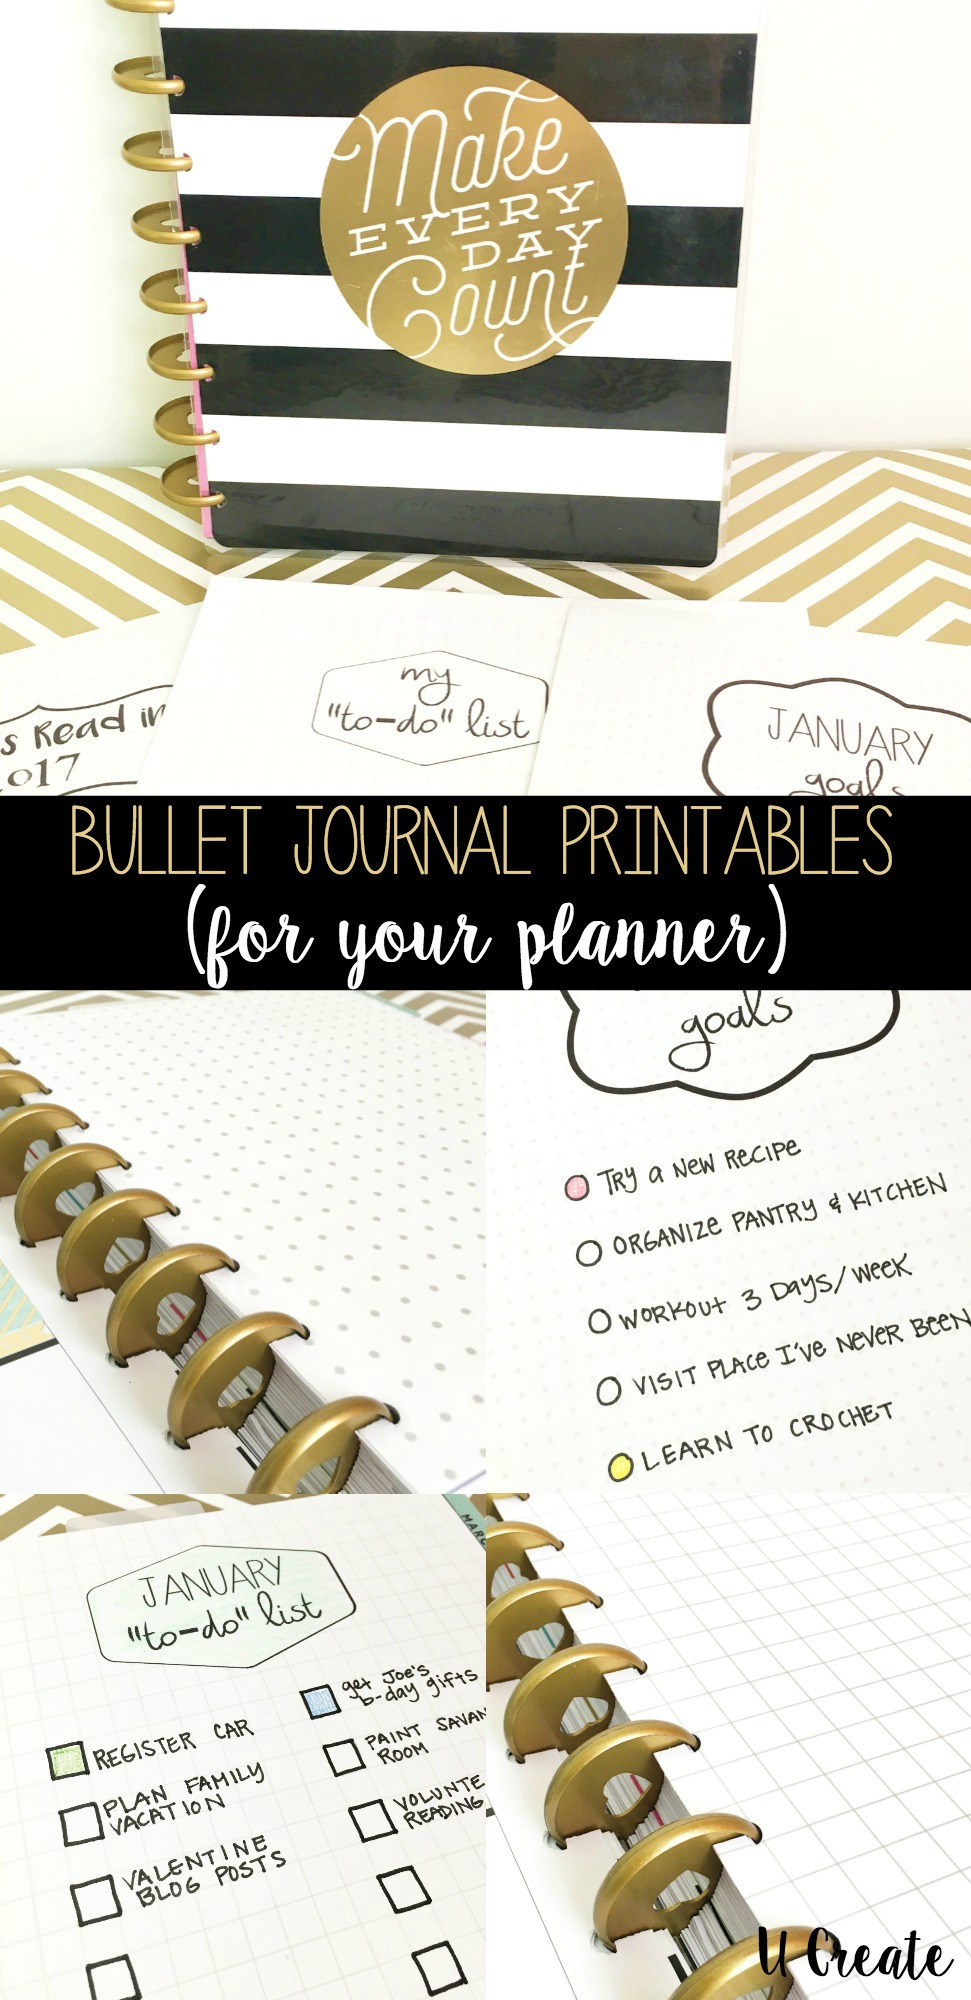 Bullet Journal Printables by U Create